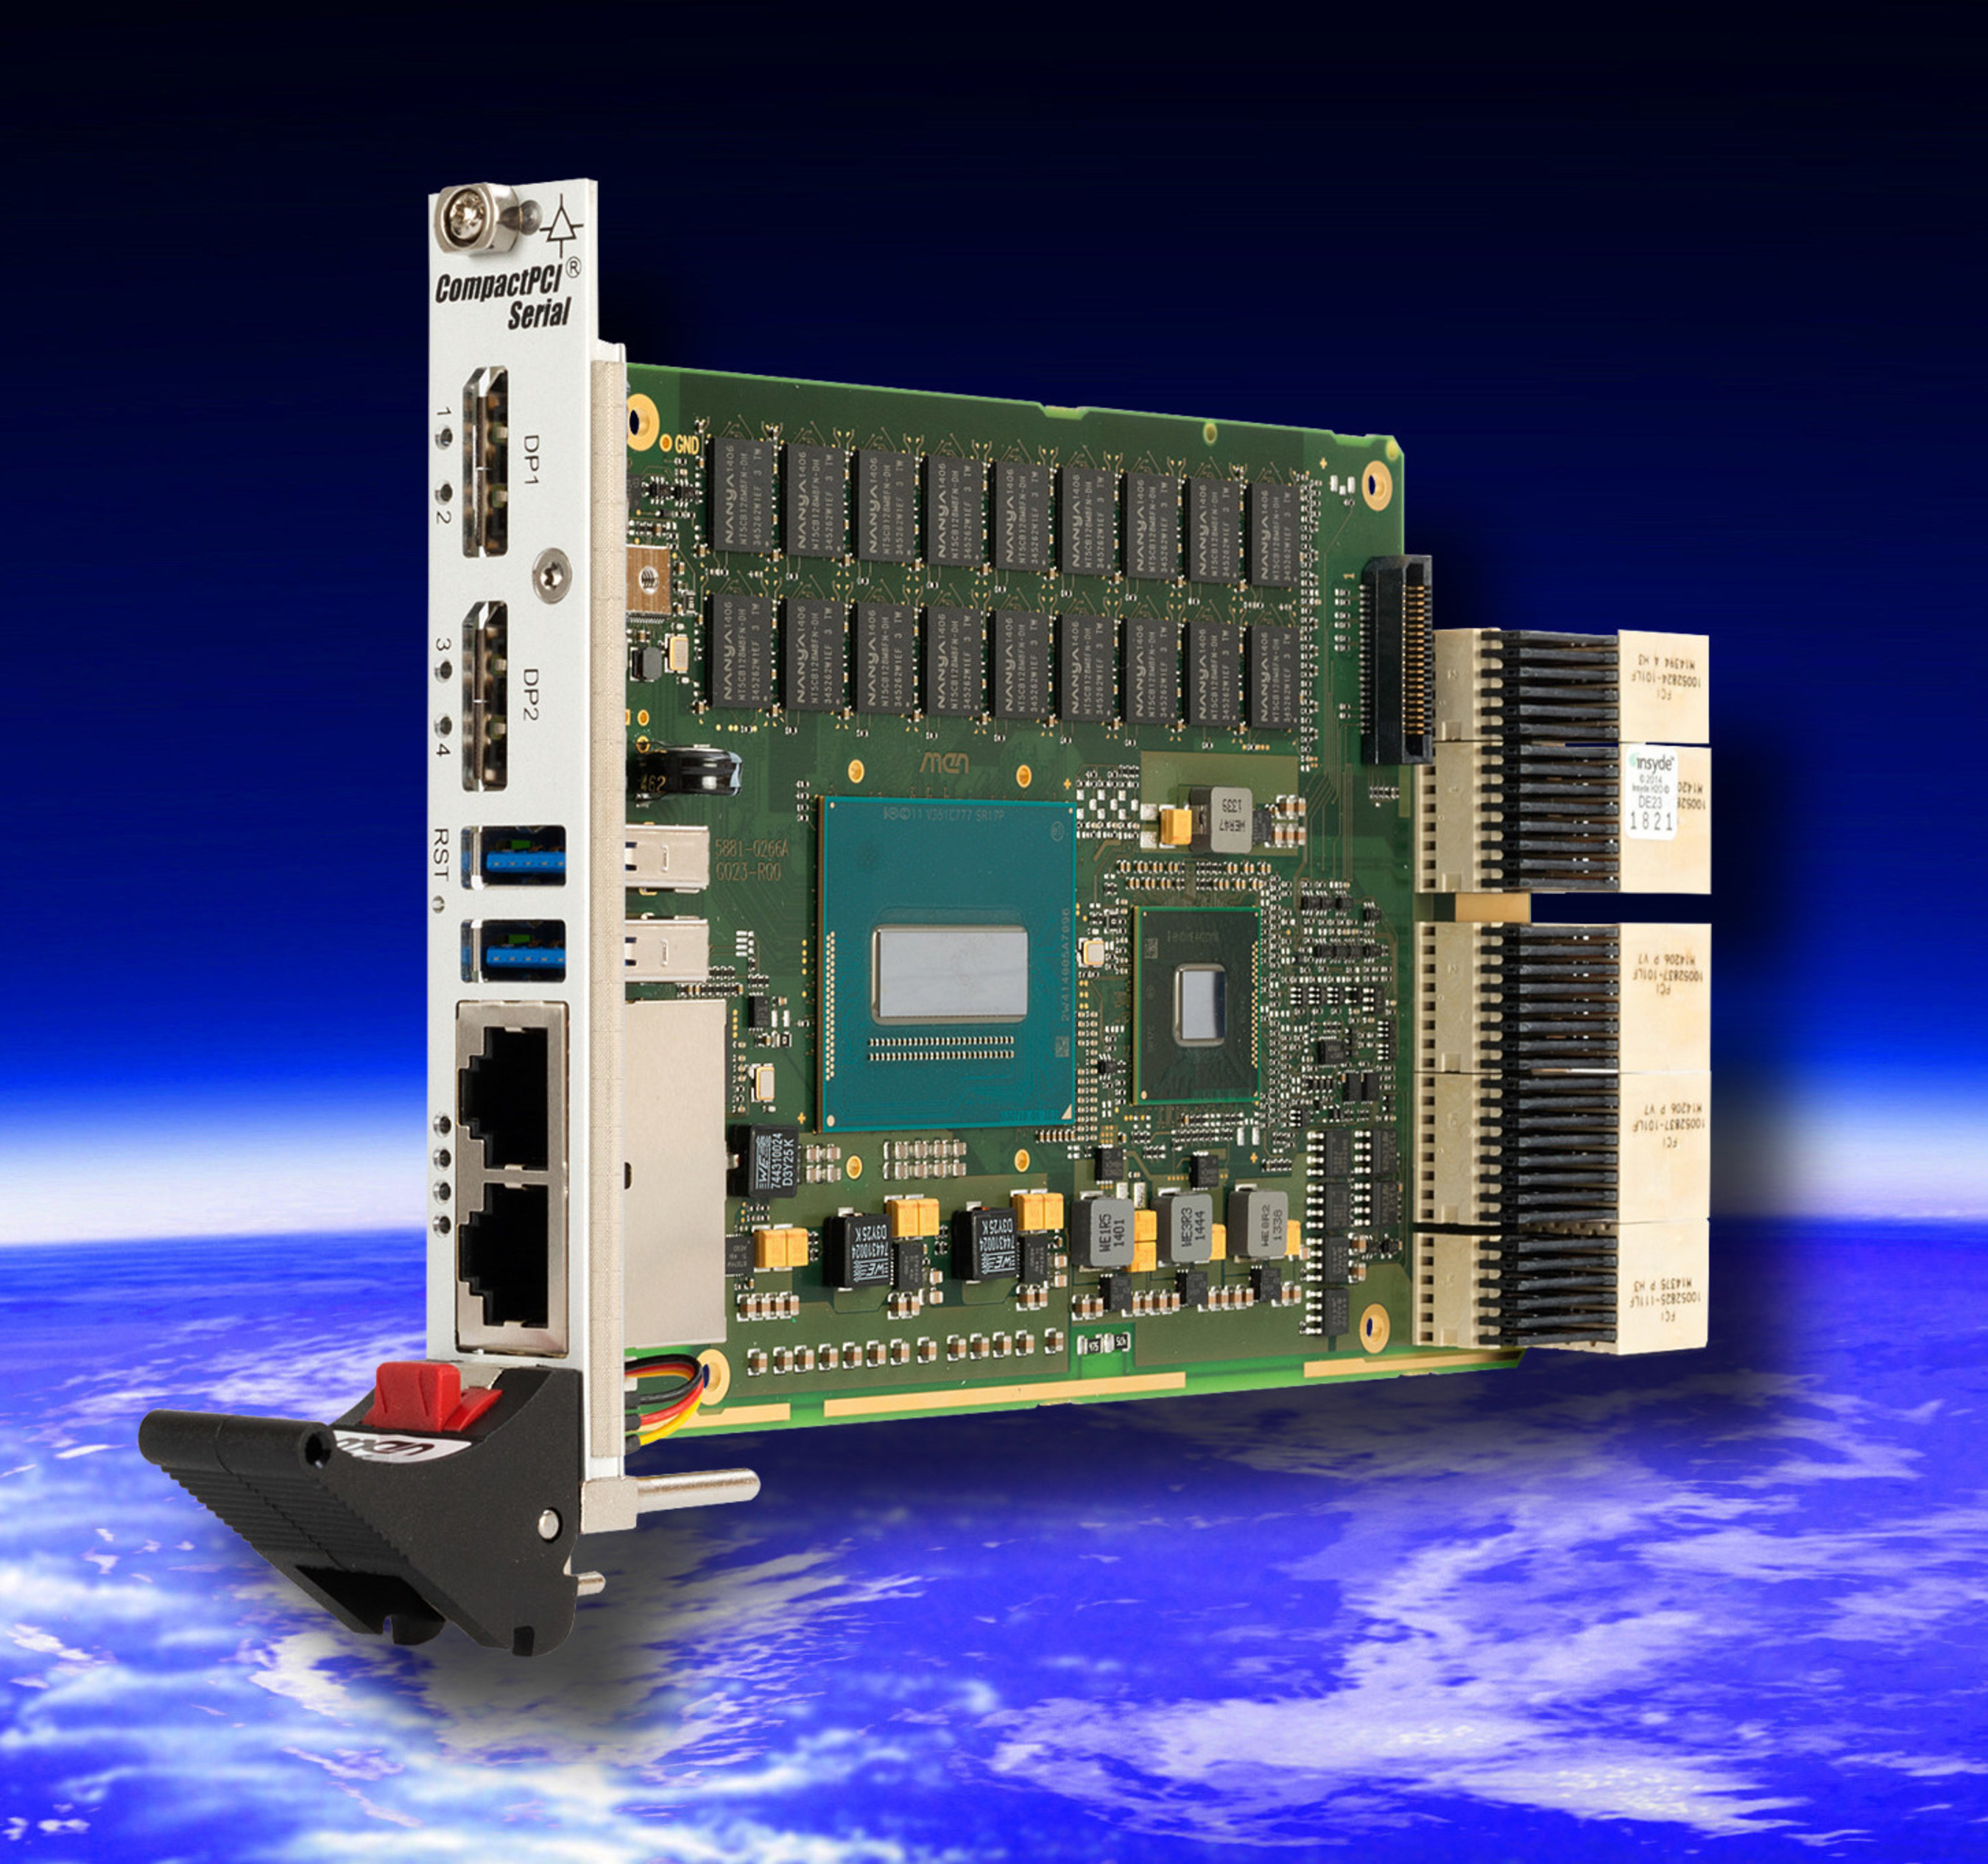 CompactPCI Serial Headed Into Orbit with New PICMG Working Group